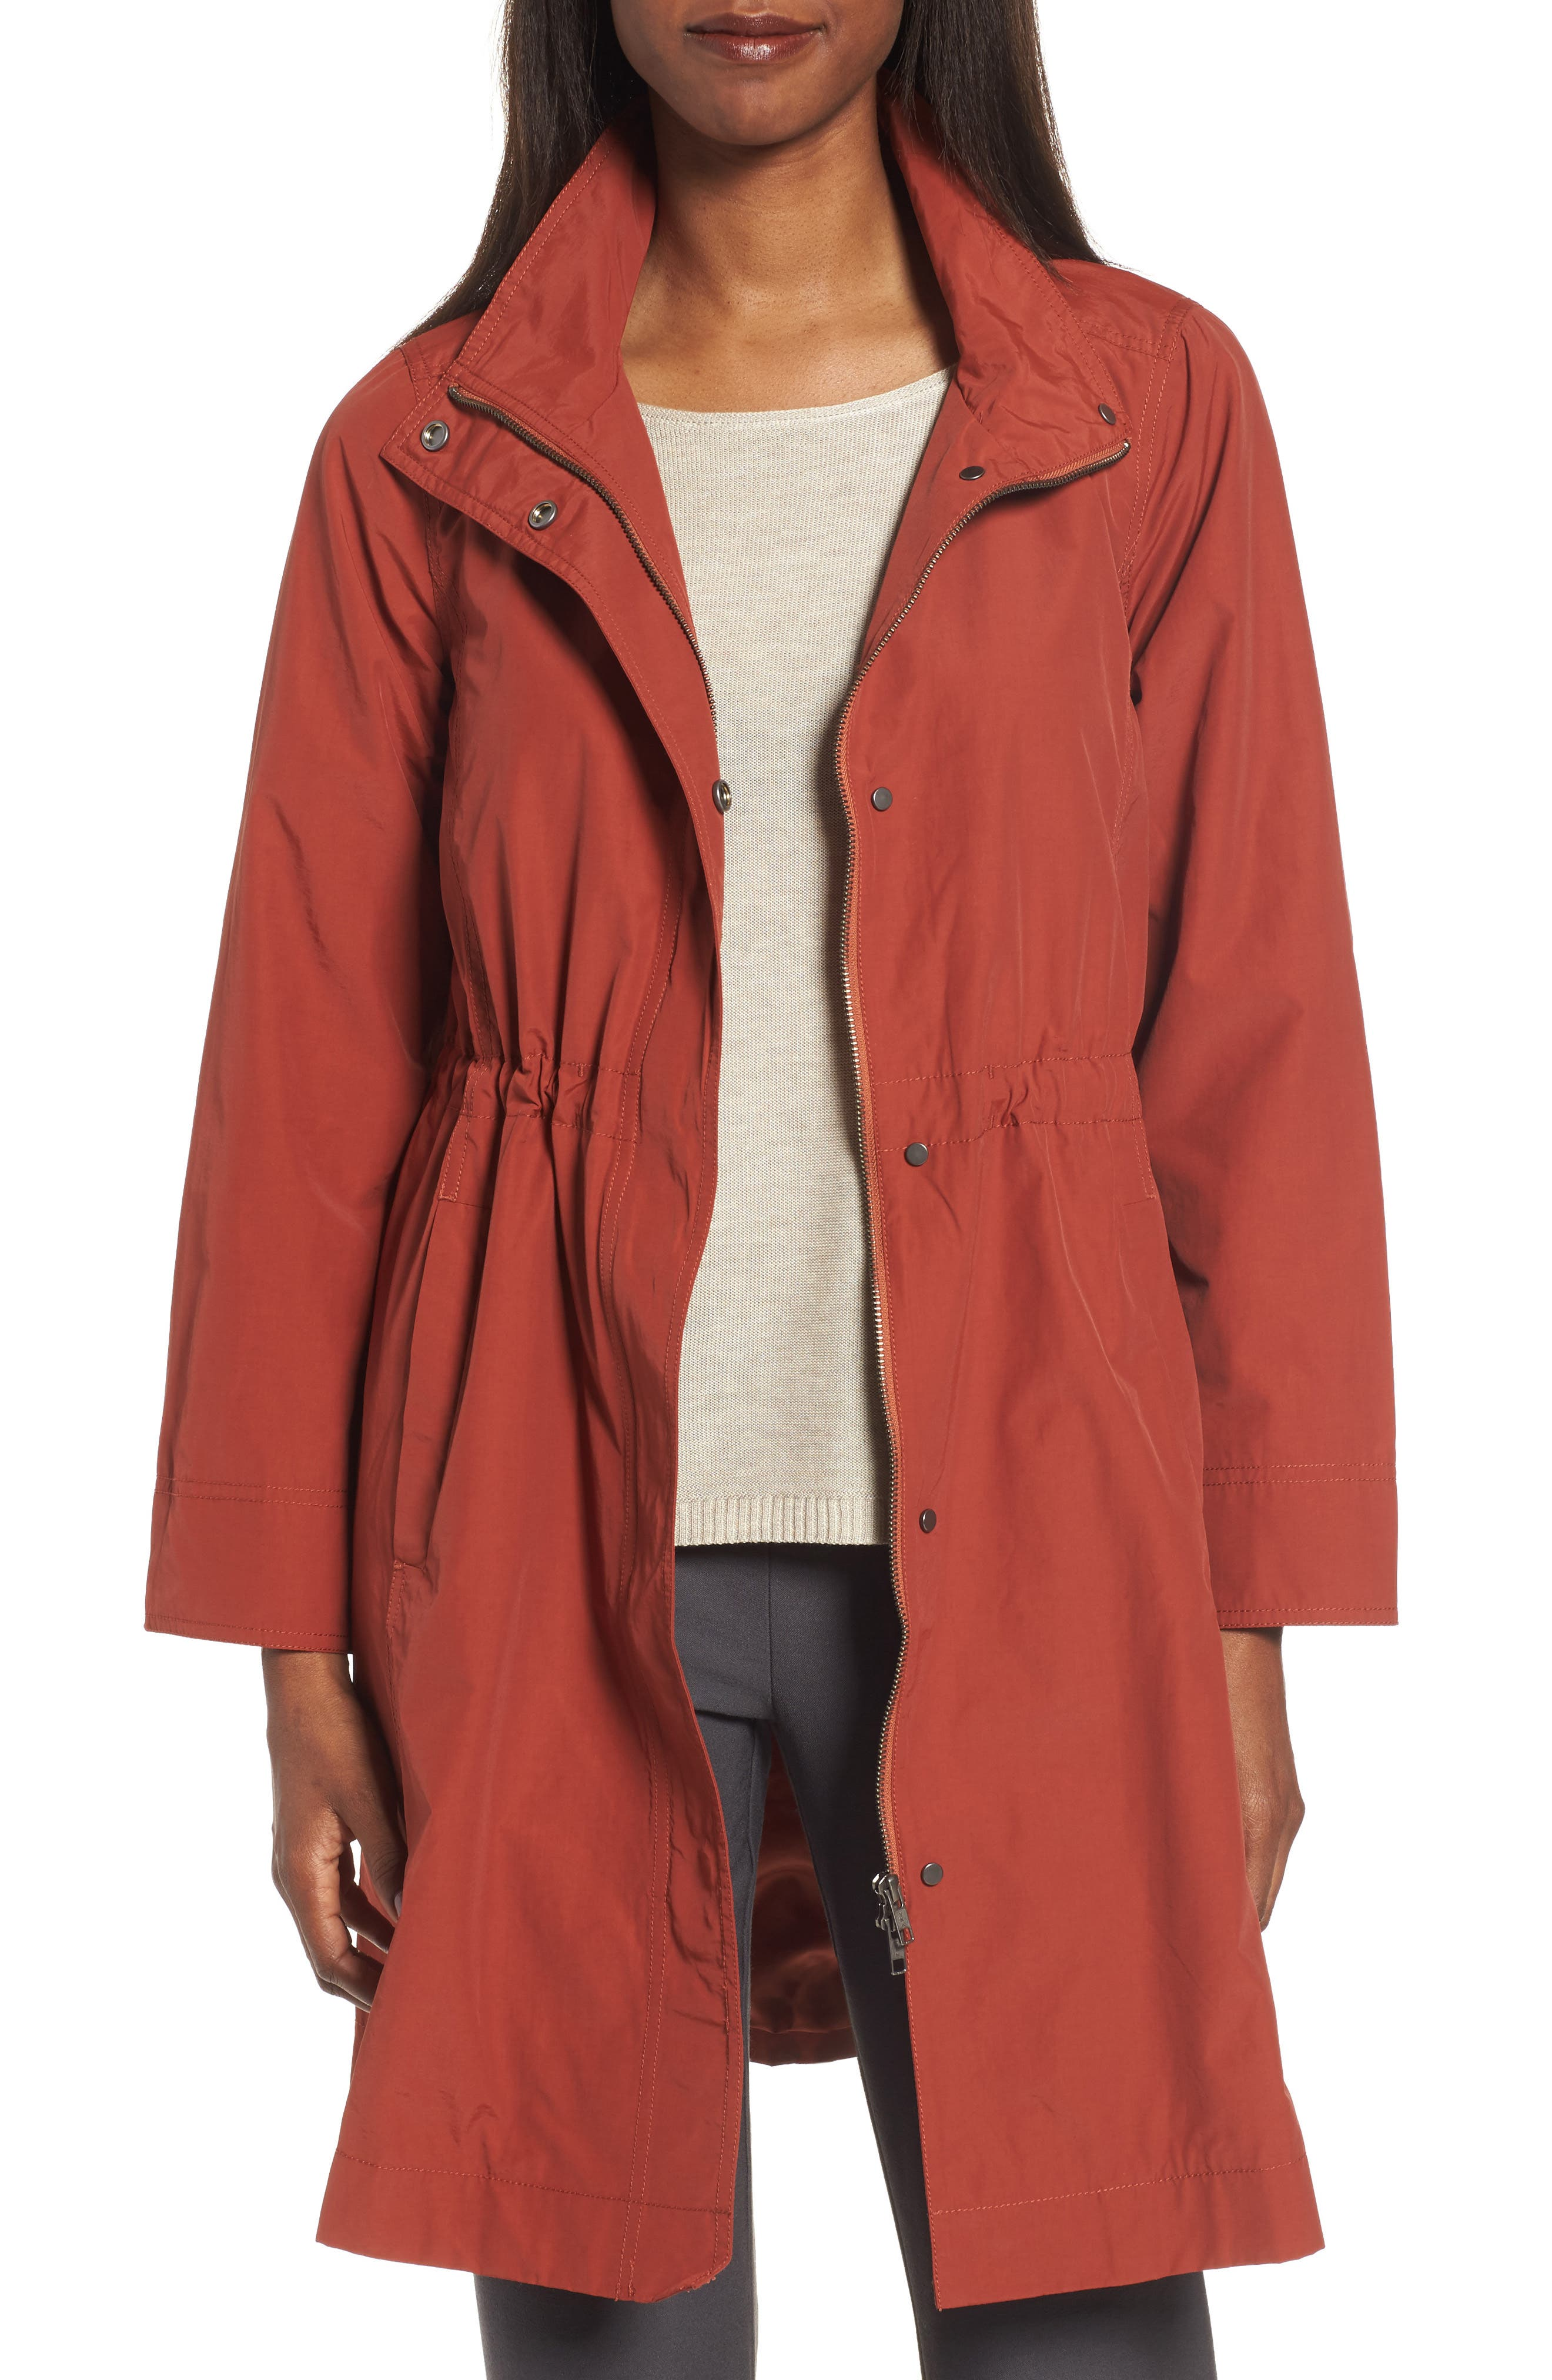 Main Image - Eileen Fisher Long Organic Cotton Blend Jacket